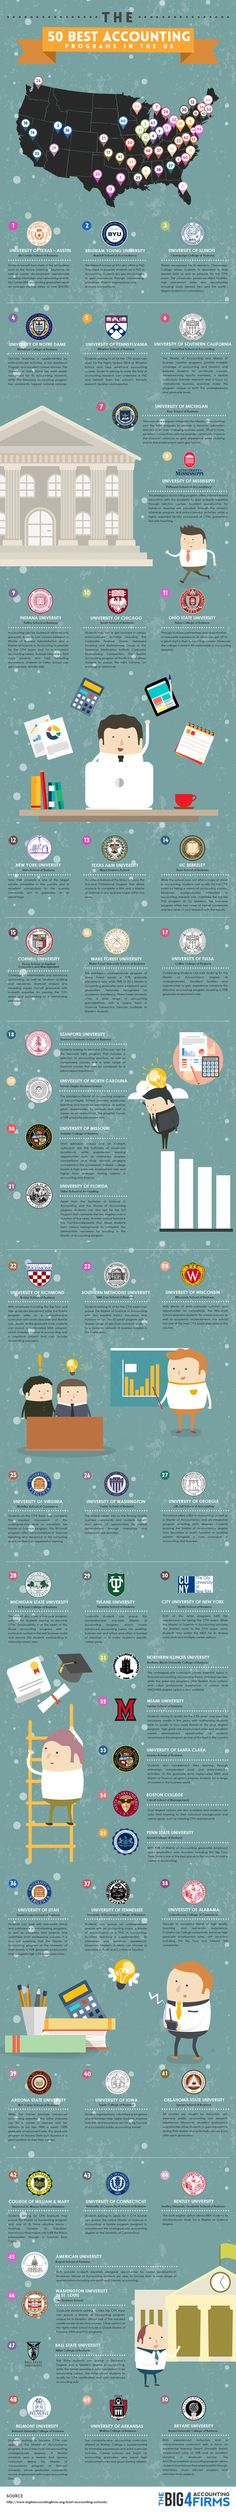 The 50 Best US Accounting Programs #infographic #Education #AccountingPrograms